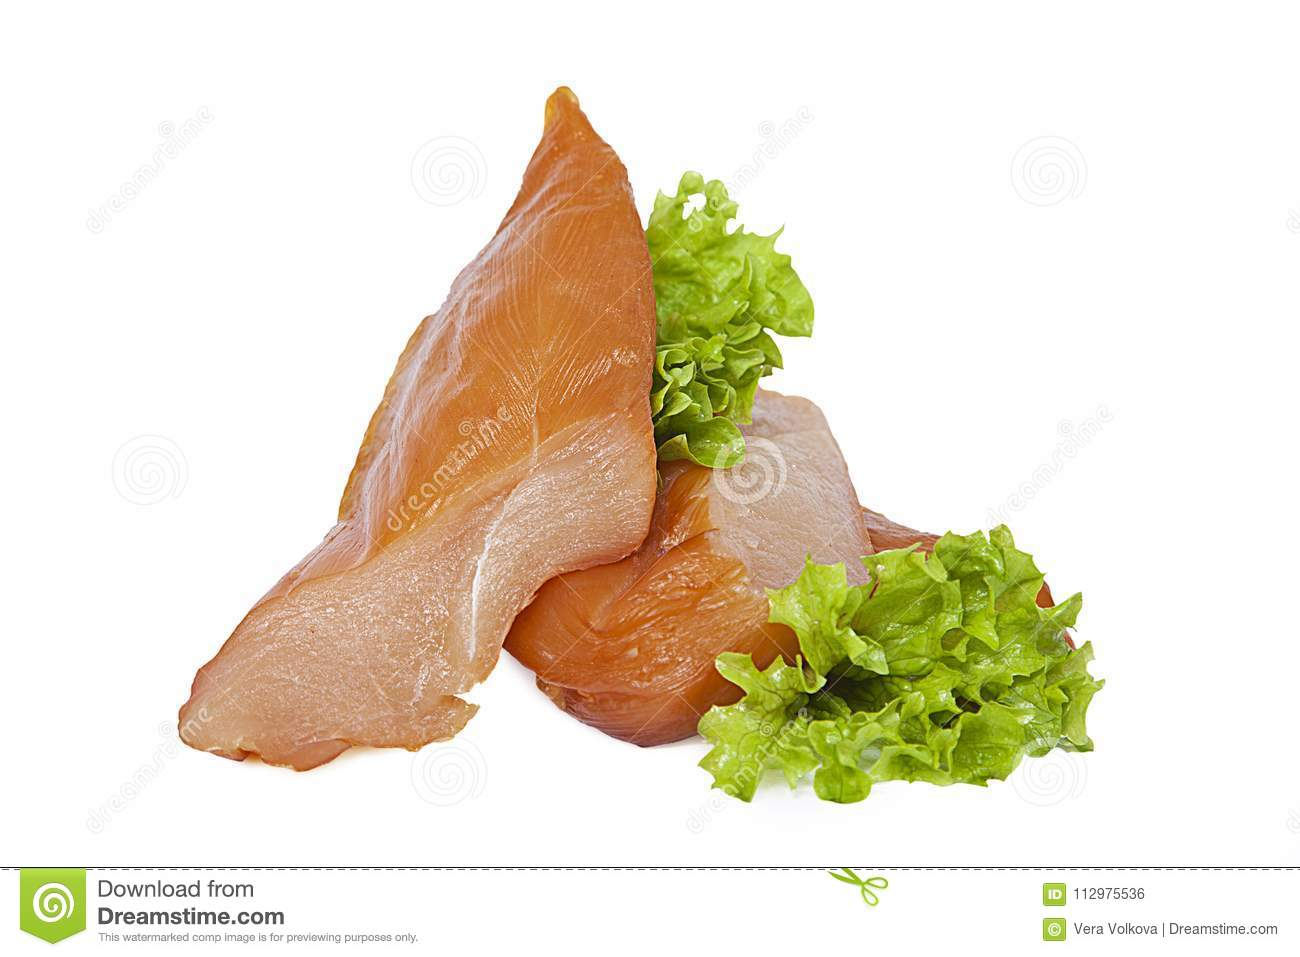 Smoked chicken breast with lettuce leaves. Isolated on white background